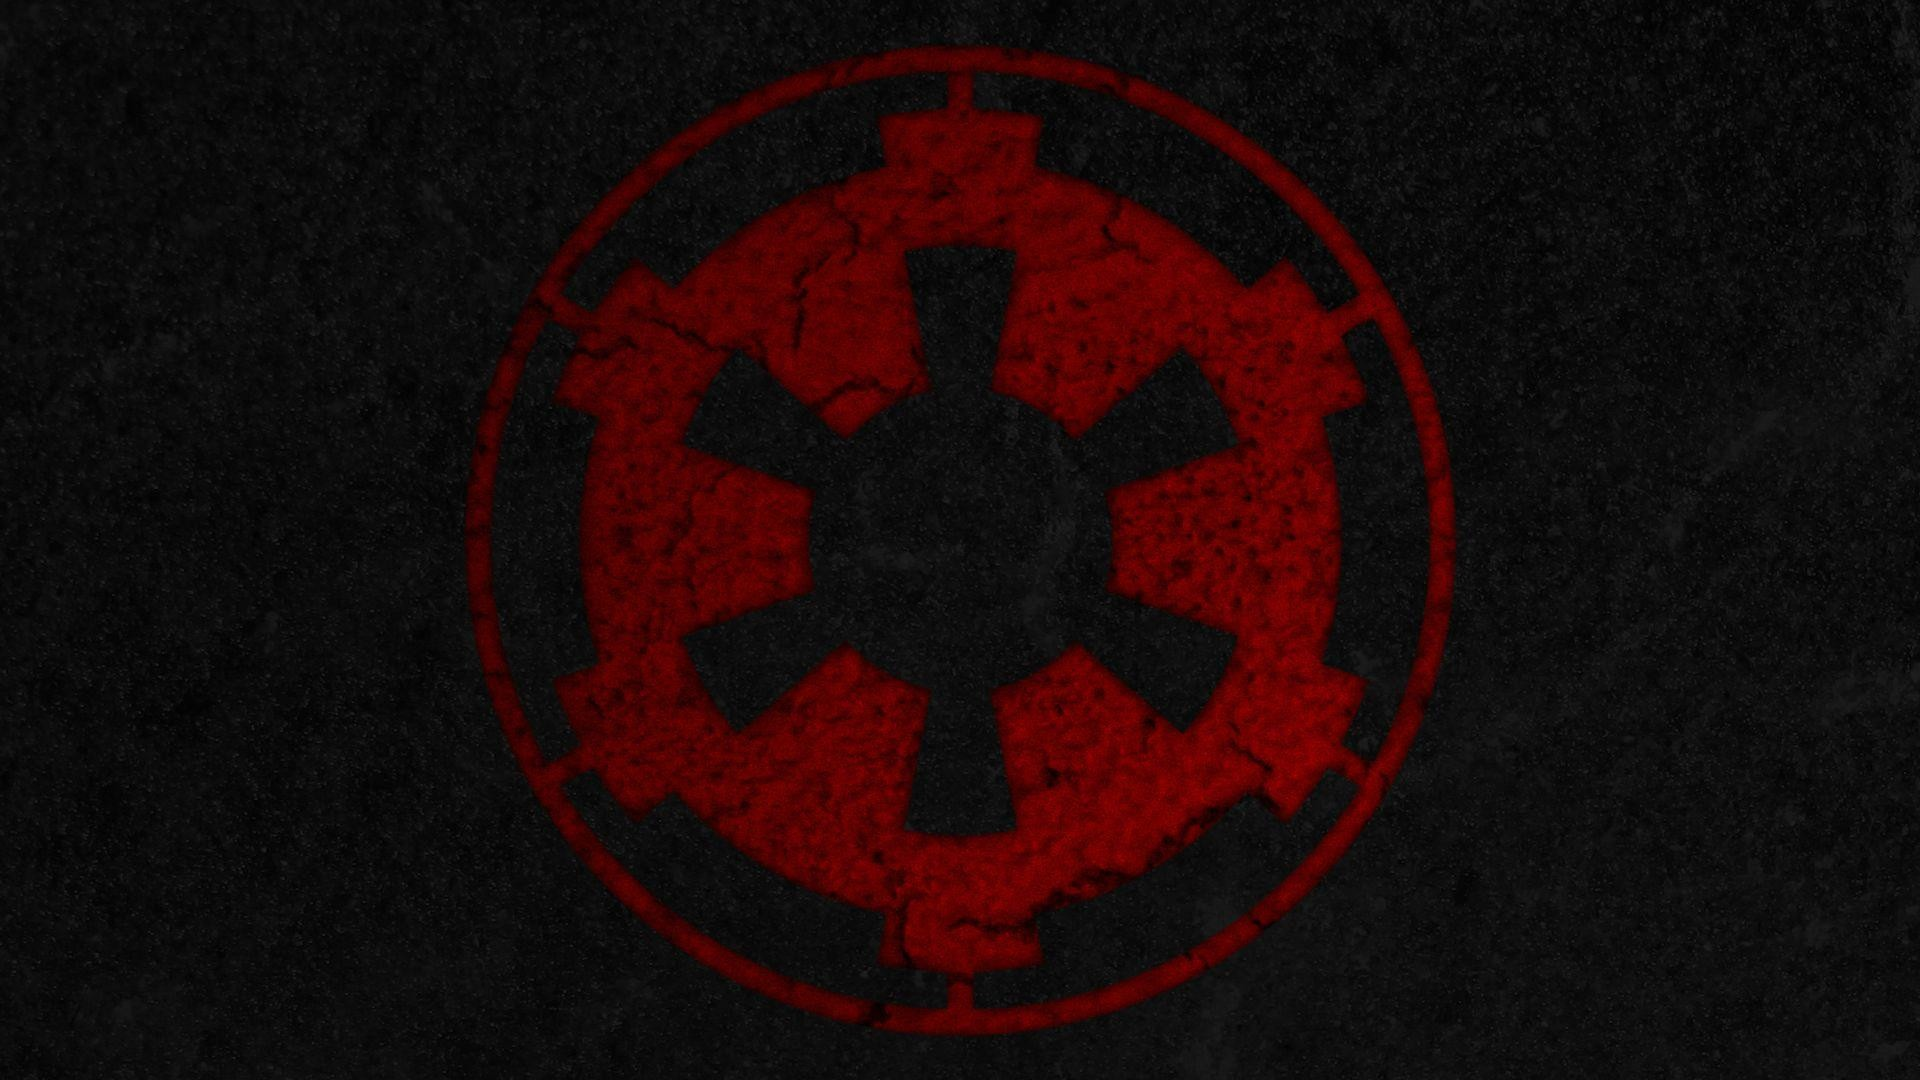 Star Wars Empire Wallpaper 1920x1080 Posted By Samantha Anderson